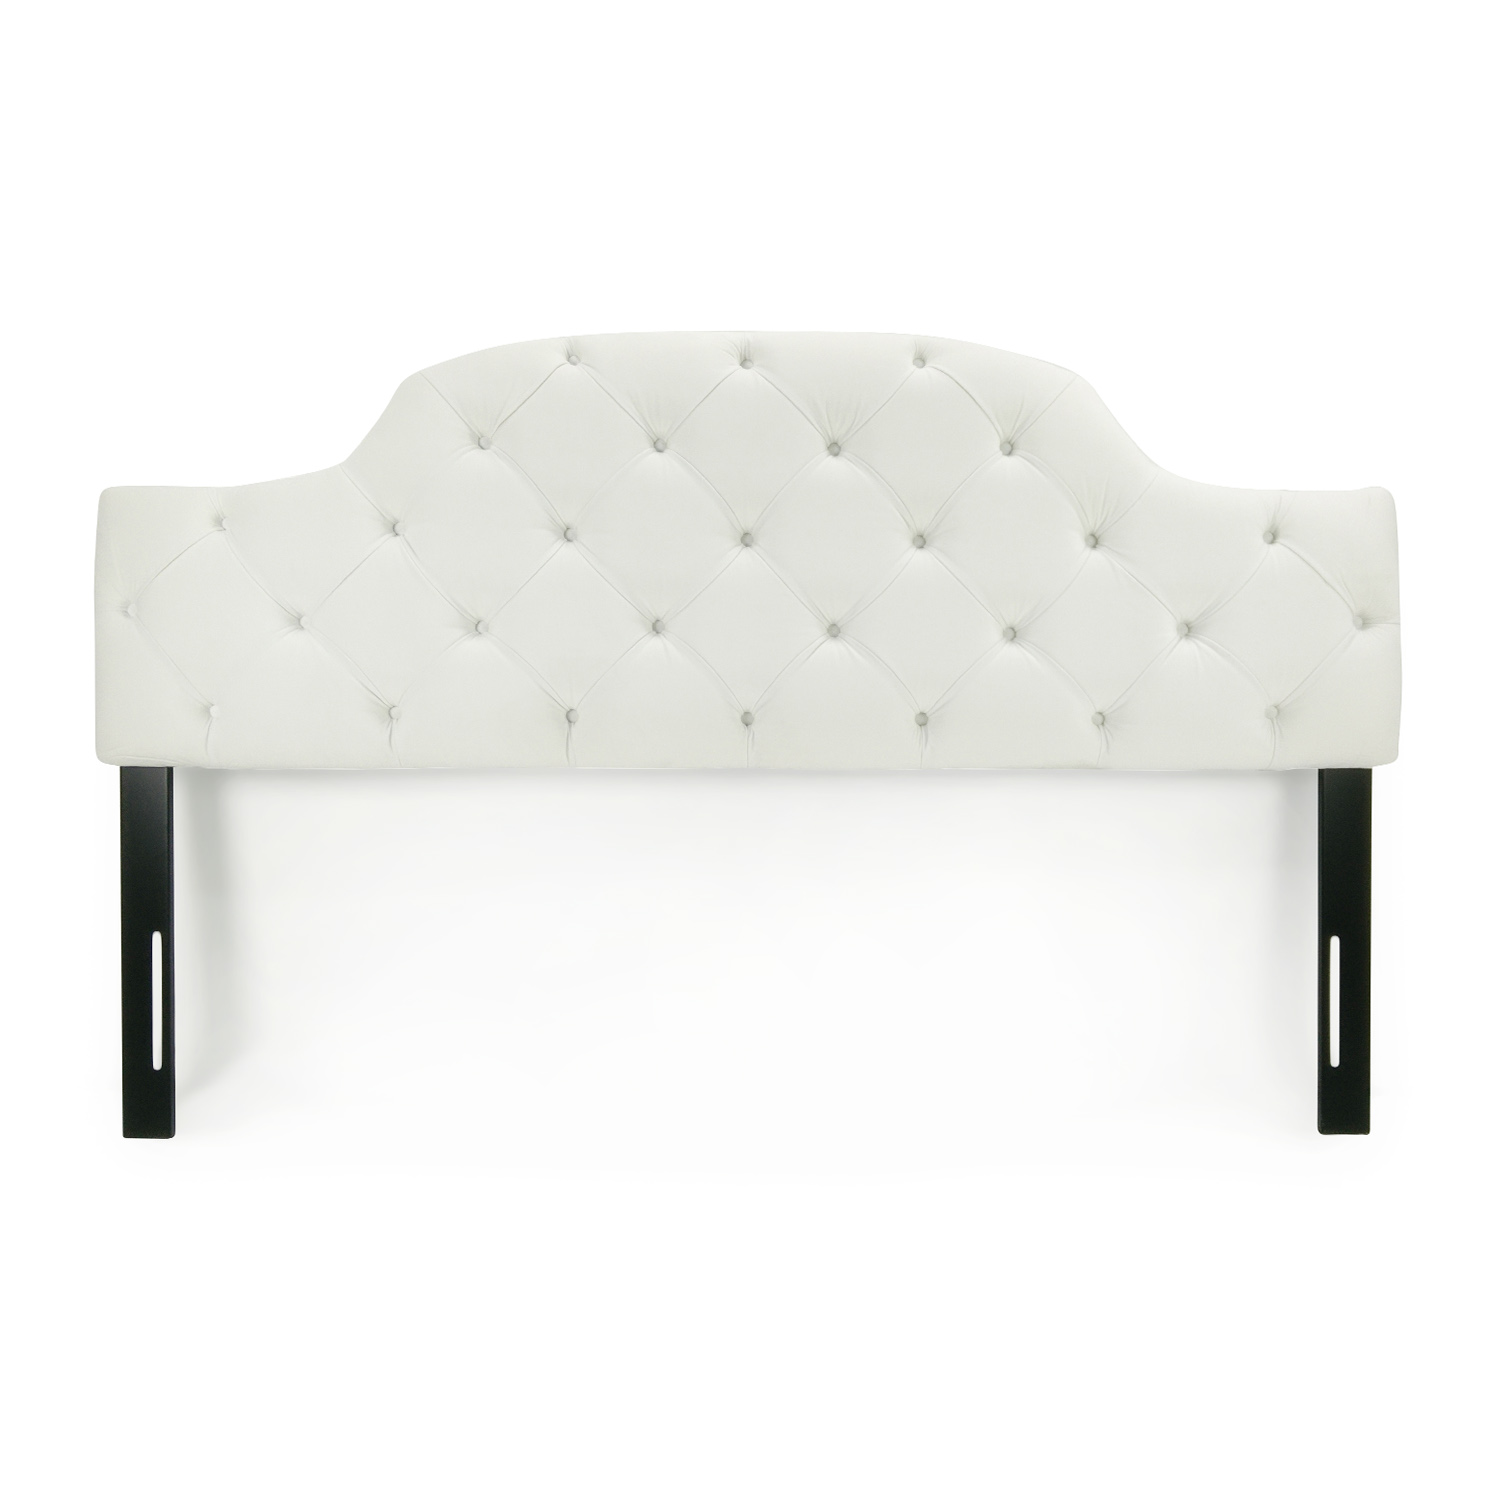 buy Sleepy's White Tufted King Headboard Sleepy's Headboards